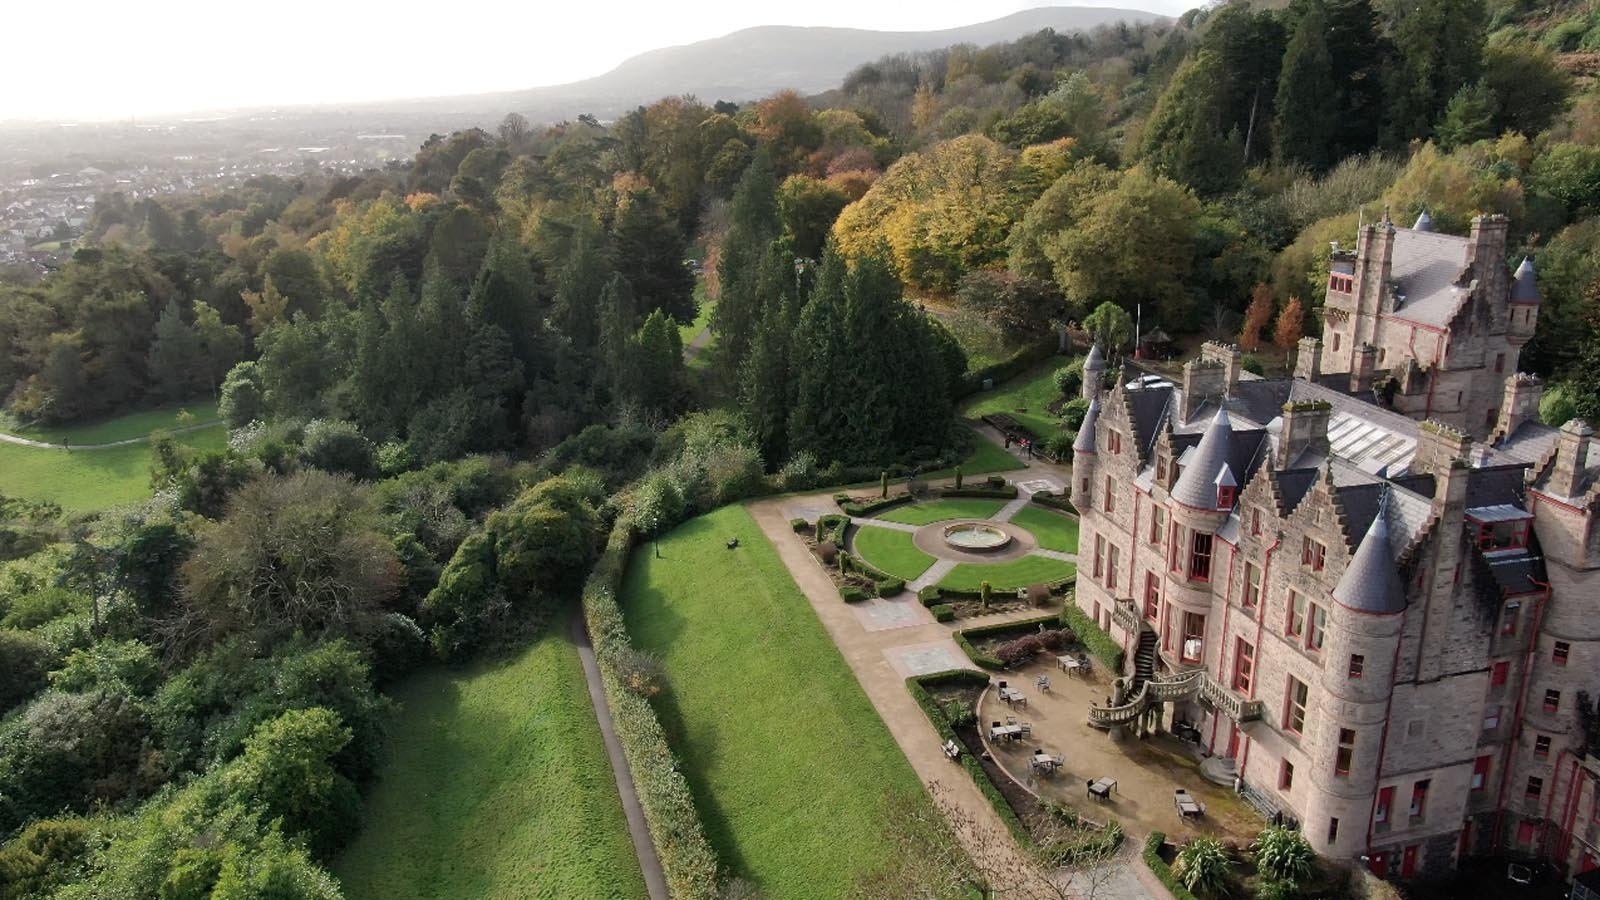 Photo: Commercial, residential, property drone photography and video Dublin, Wicklow, Monaghan, Cavan, Ireland portfolio - screenshot 4 of Belfast Castle video